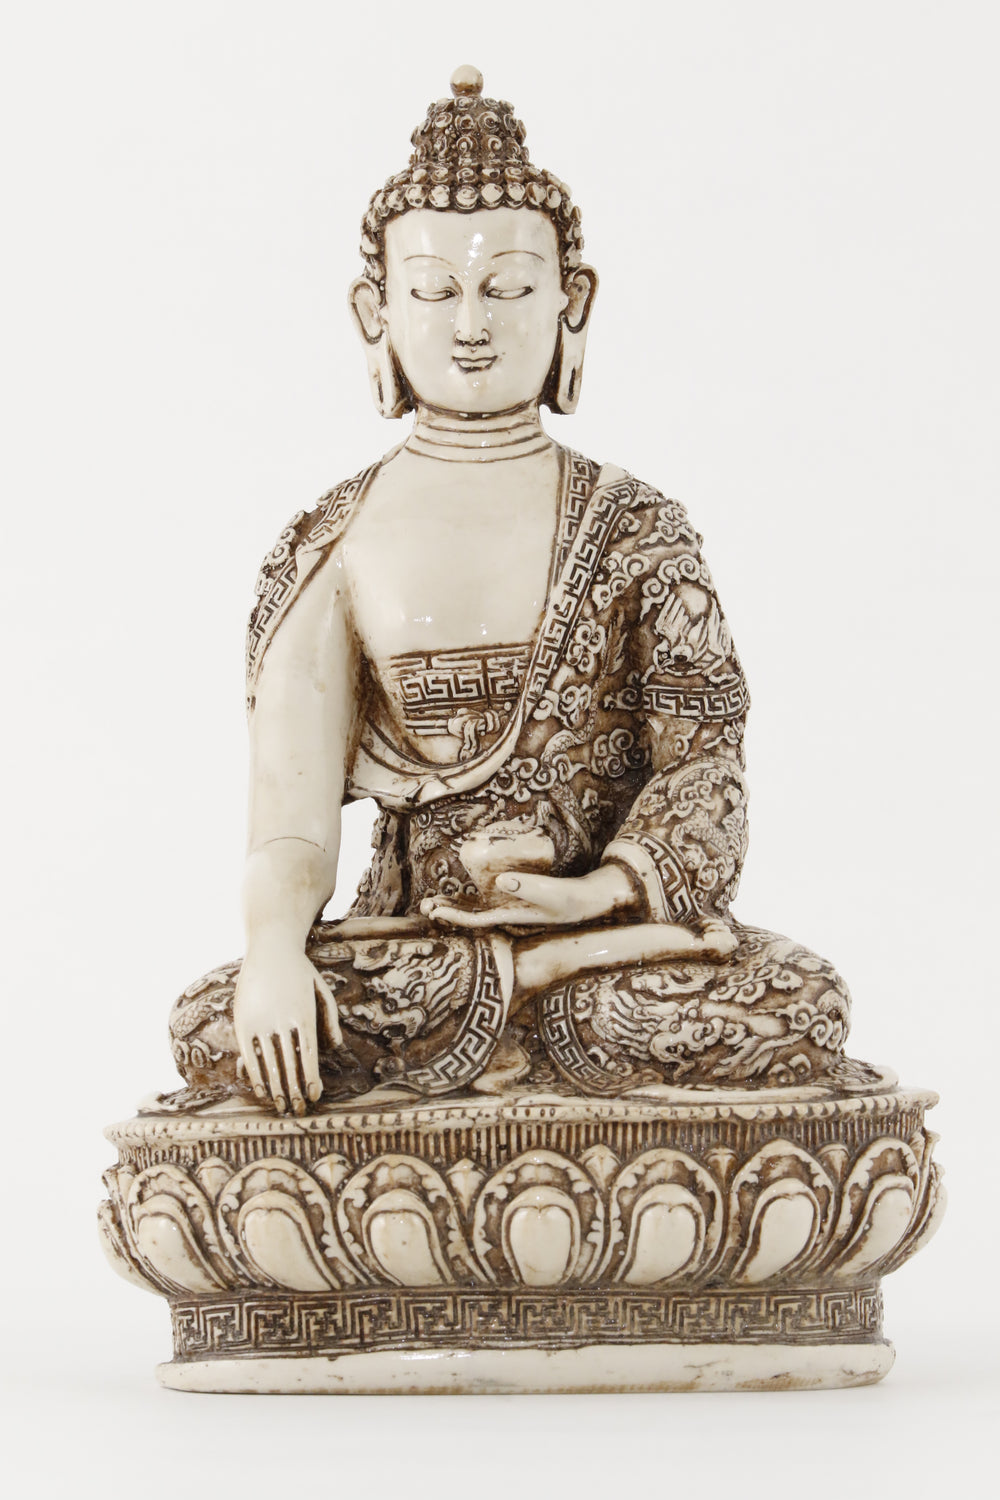 EARTH TOUCHING BUDDHA STATUE OFF-WHITE EXTRA LARGE FRONT VIEW